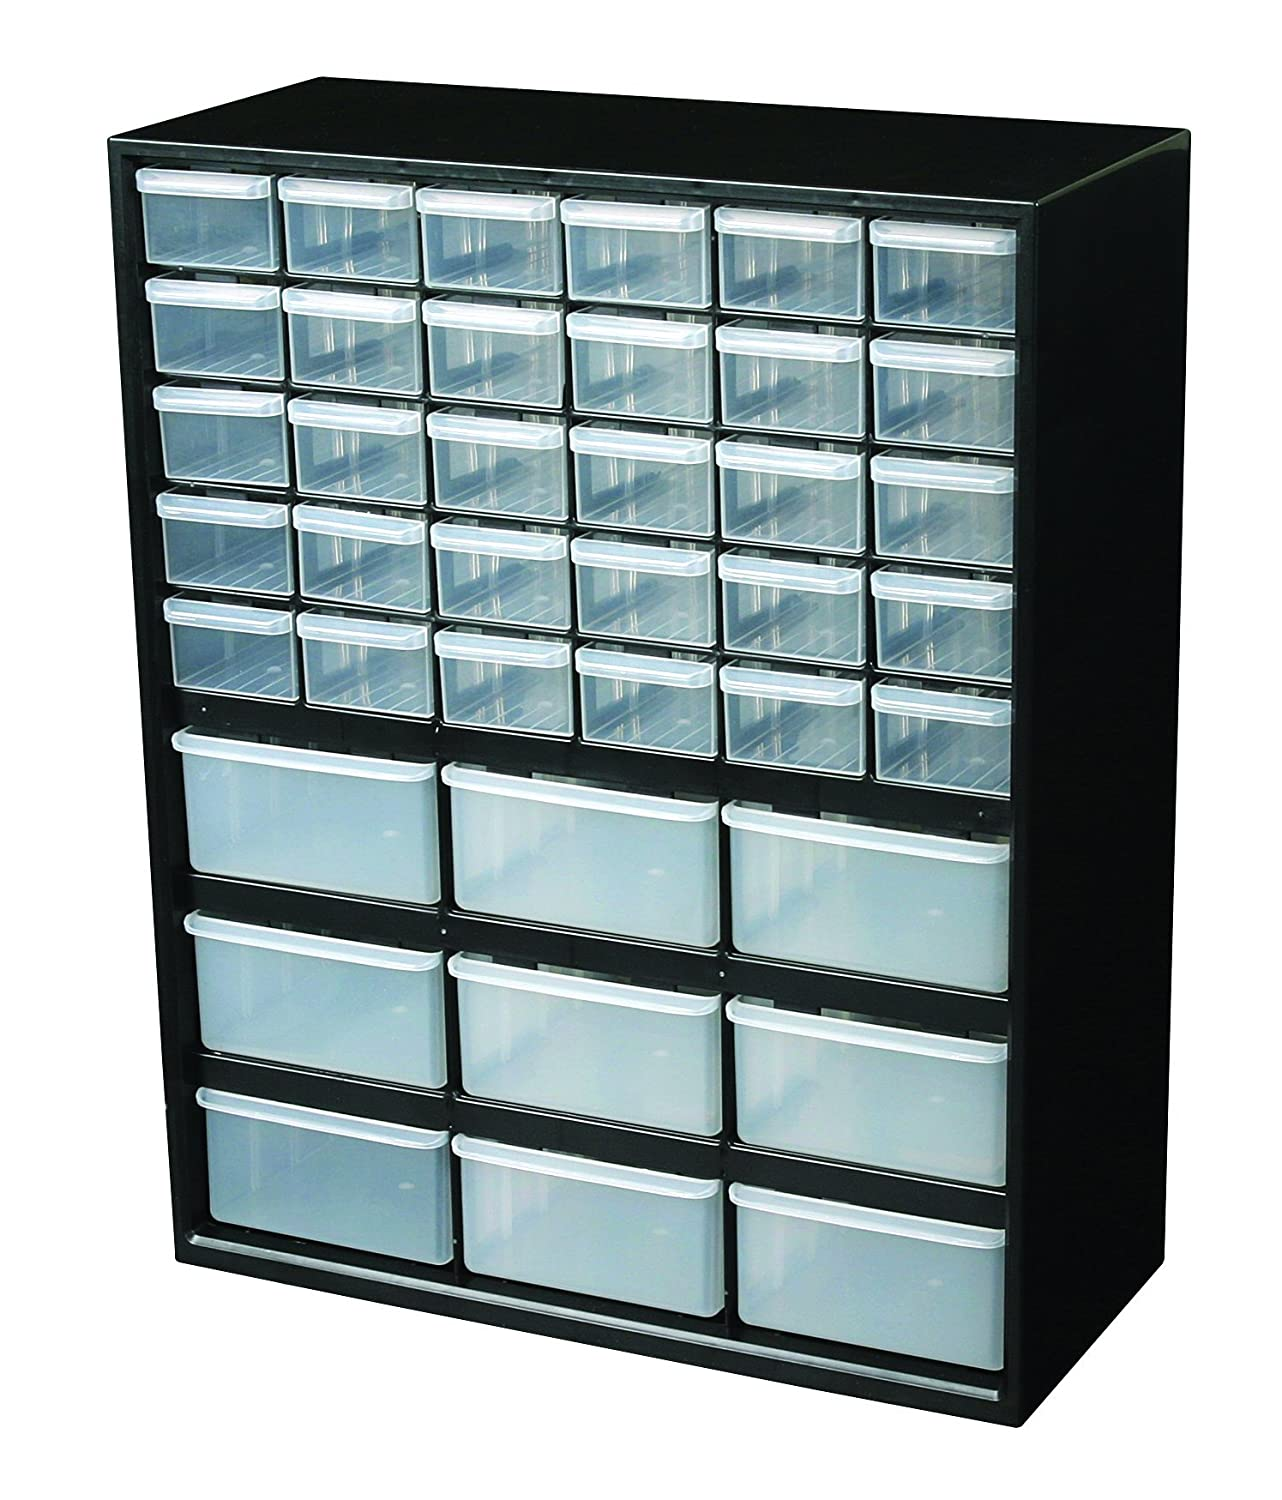 Amazon.com Flambeau 6576ND Parts Storage Drawer Hardware and Craft Cabinet with 39 Drawers Home Improvement  sc 1 st  Amazon.com : craft cabinet storage - Cheerinfomania.Com